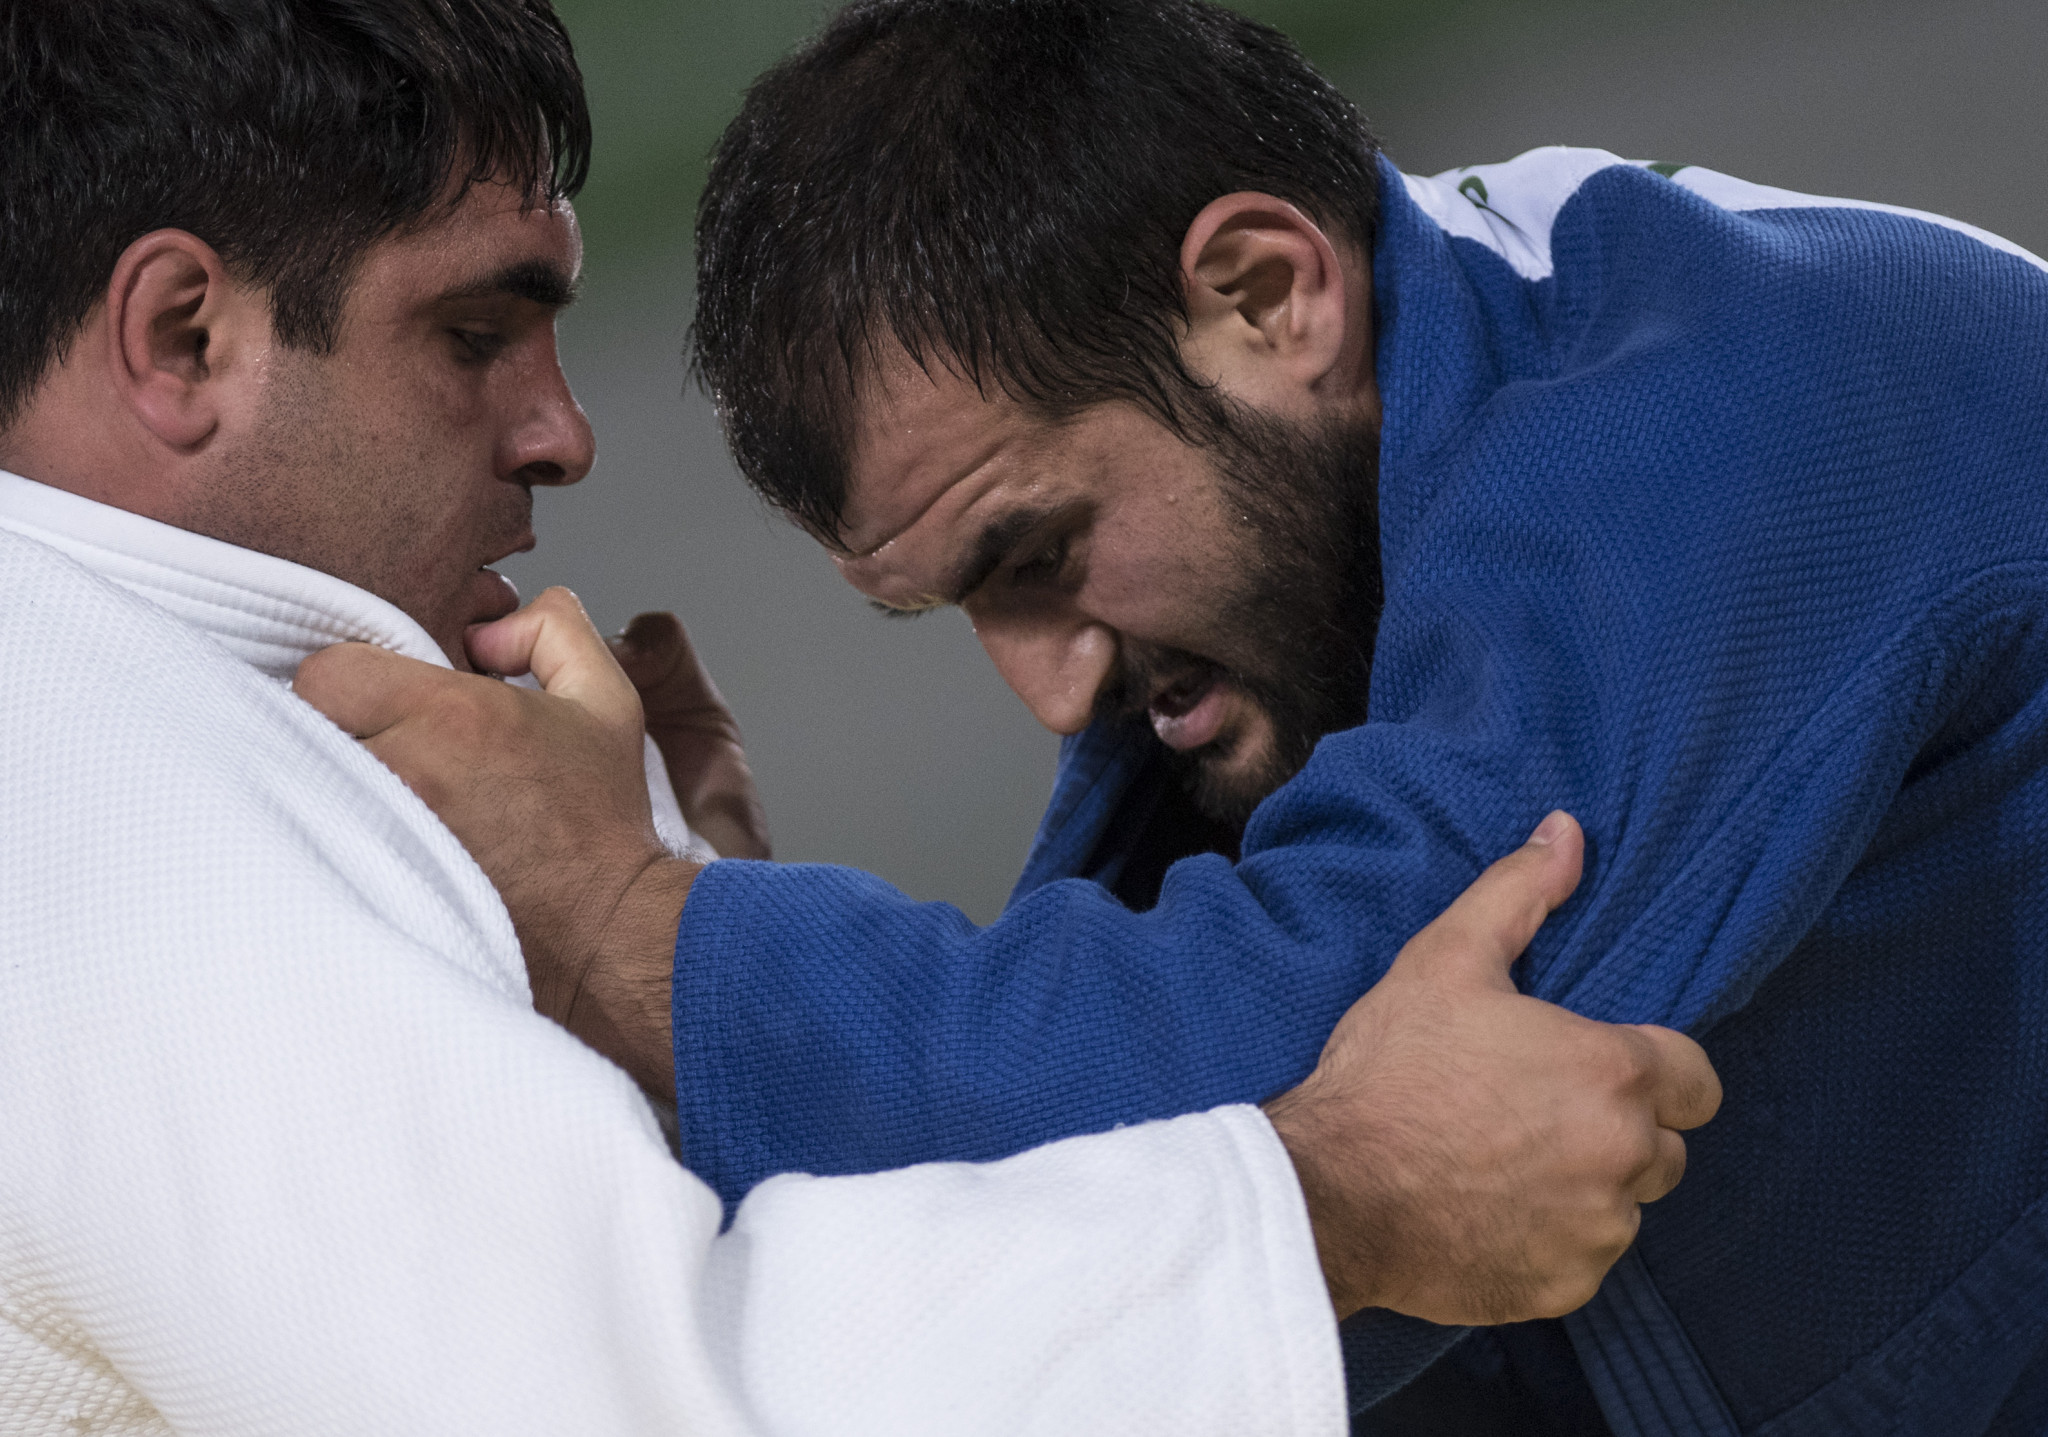 Uzbekistan claim two more golds to top medal table at IBSA Judo Grand Prix in Baku